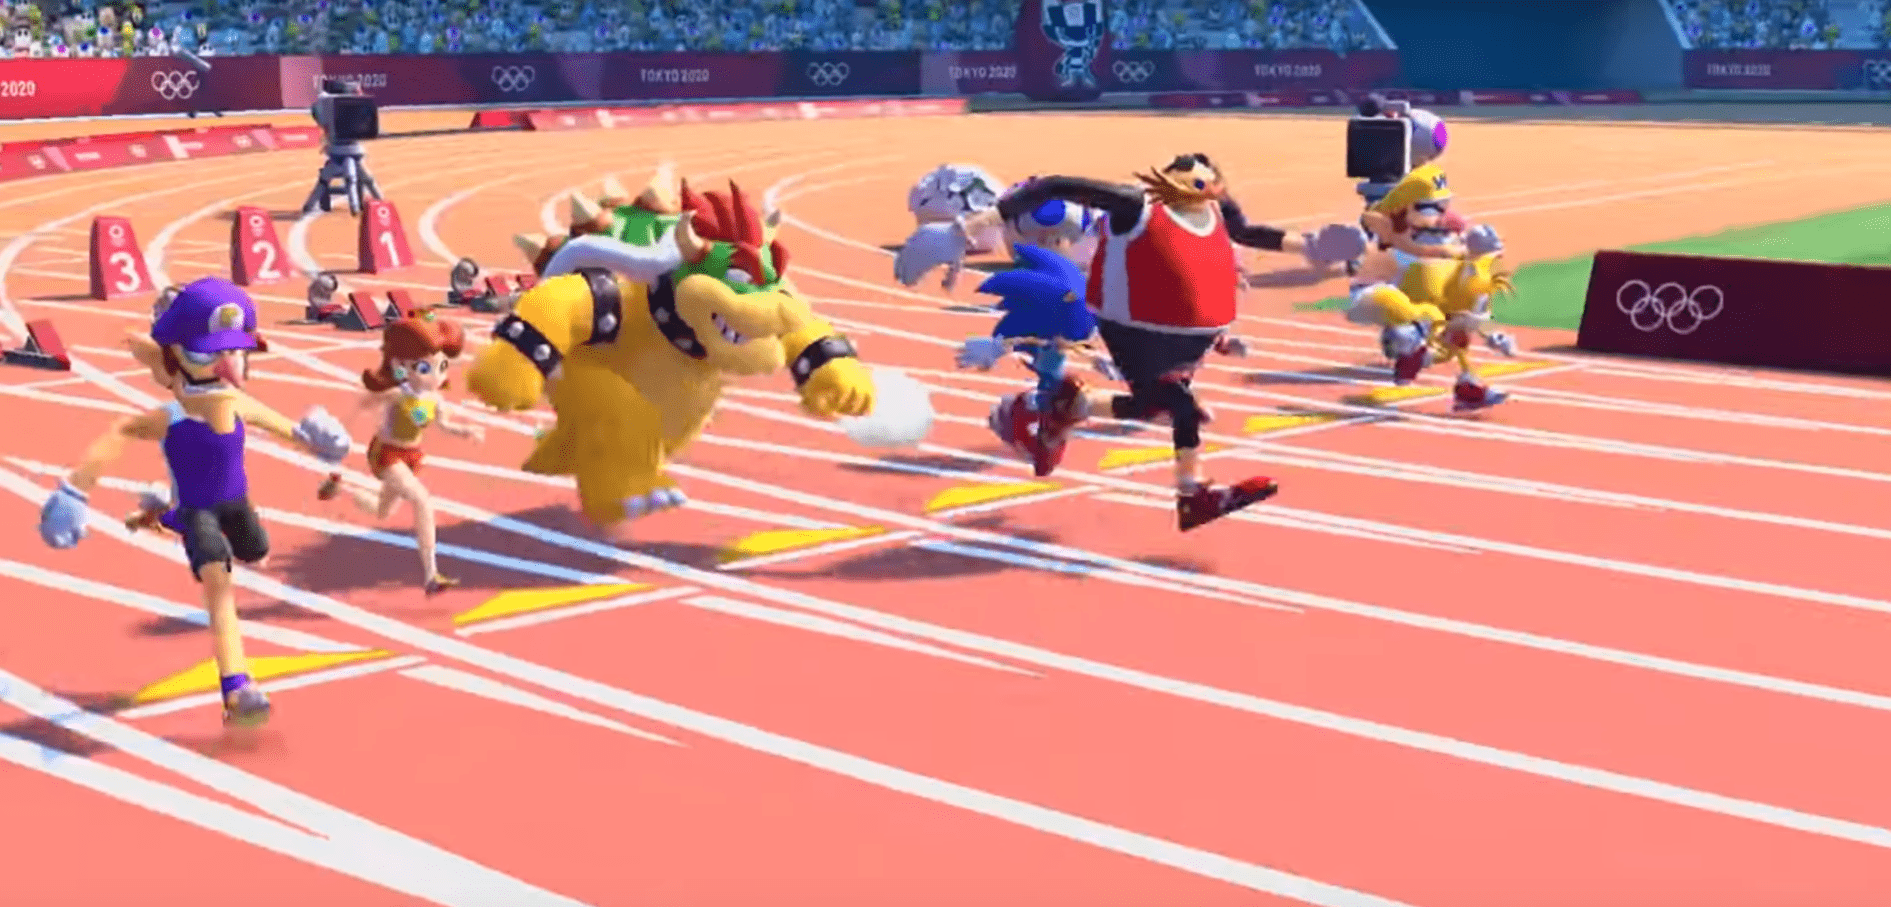 Mario & Sonic At The Olympic Games Tokyo 2020 – Everything Gamers Need To Know